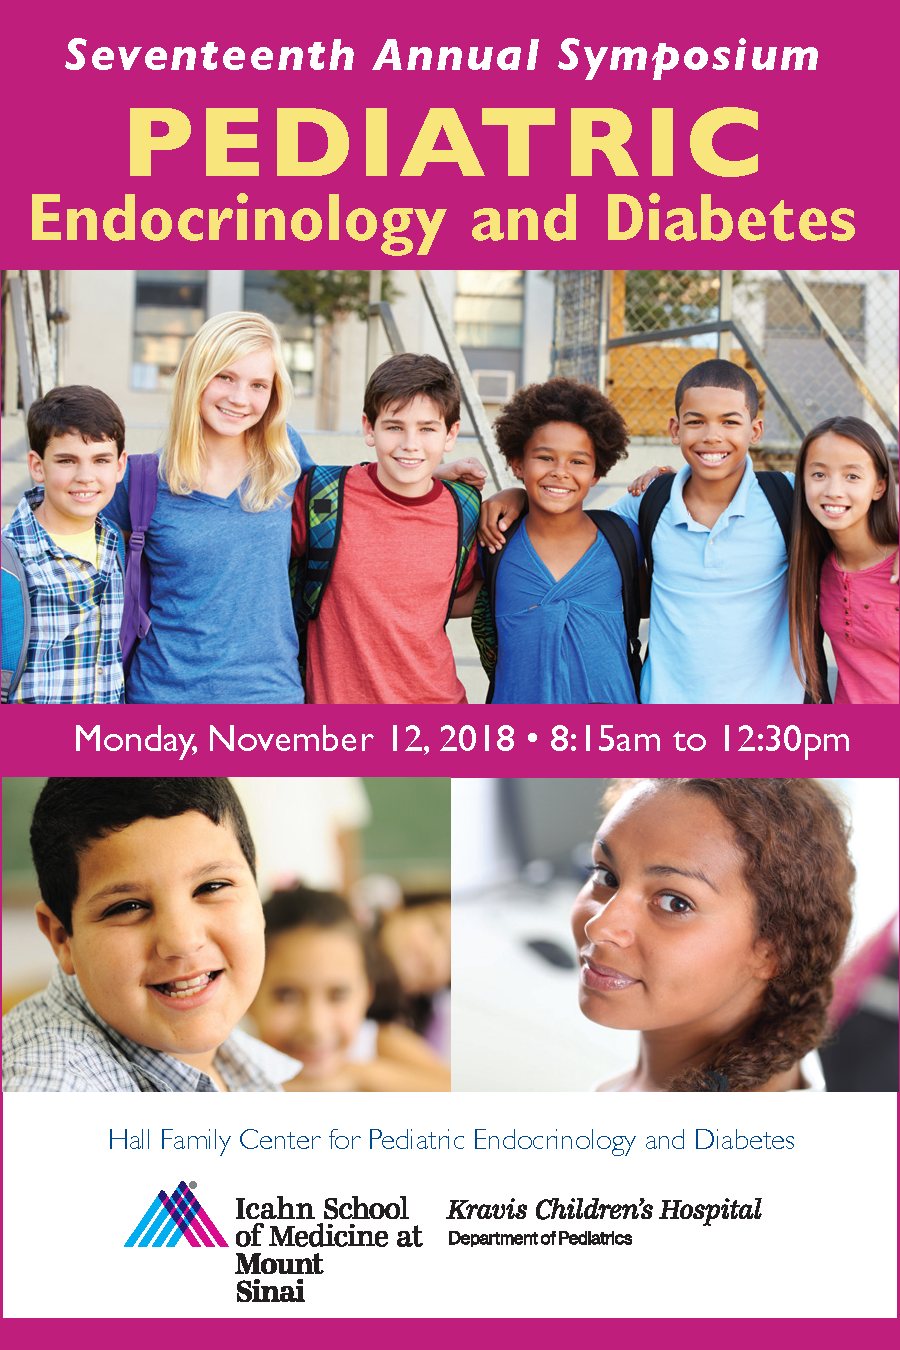 Seventeenth Annual Pediatric Endocrinology and Diabetes Symposium Banner